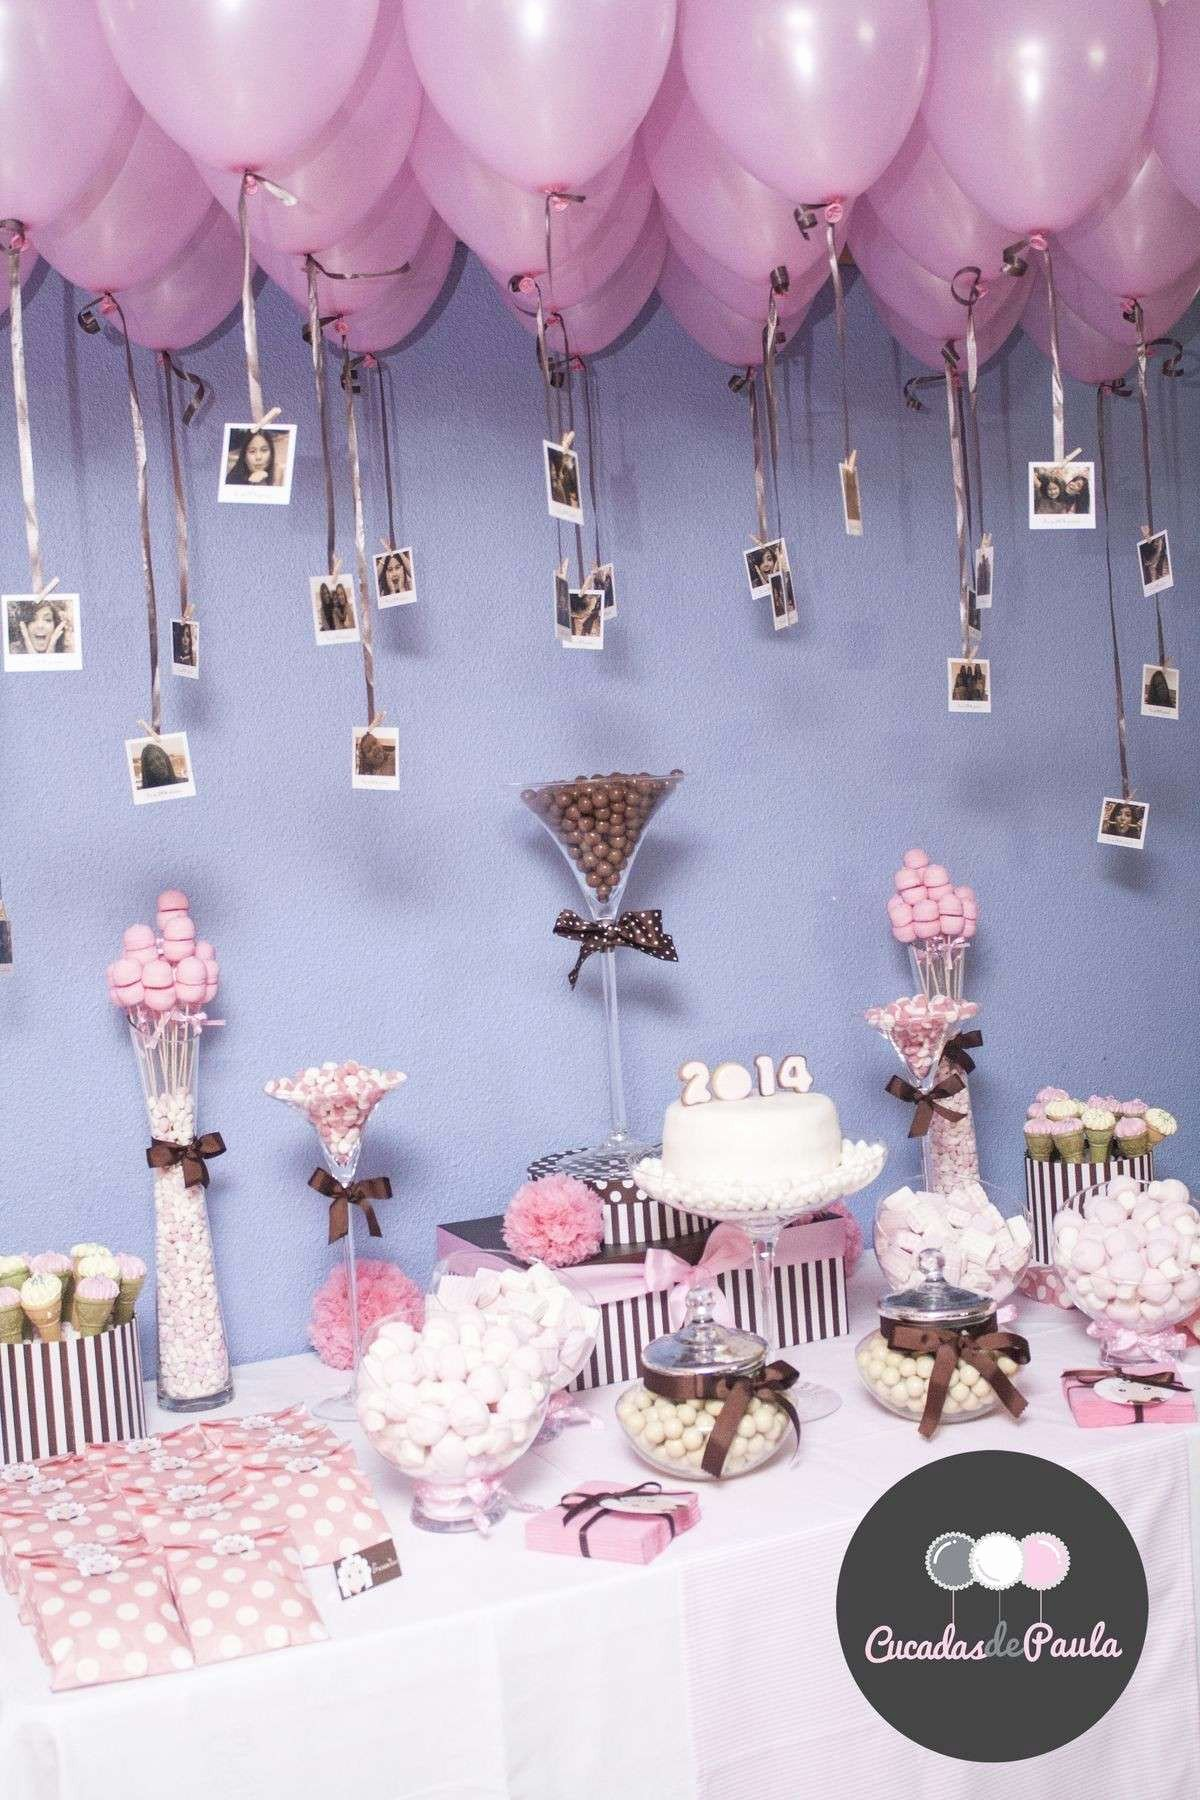 At Home Birthday Decoration Ideas New Awesome First Birthday Decoration Ideas at Home for Girl